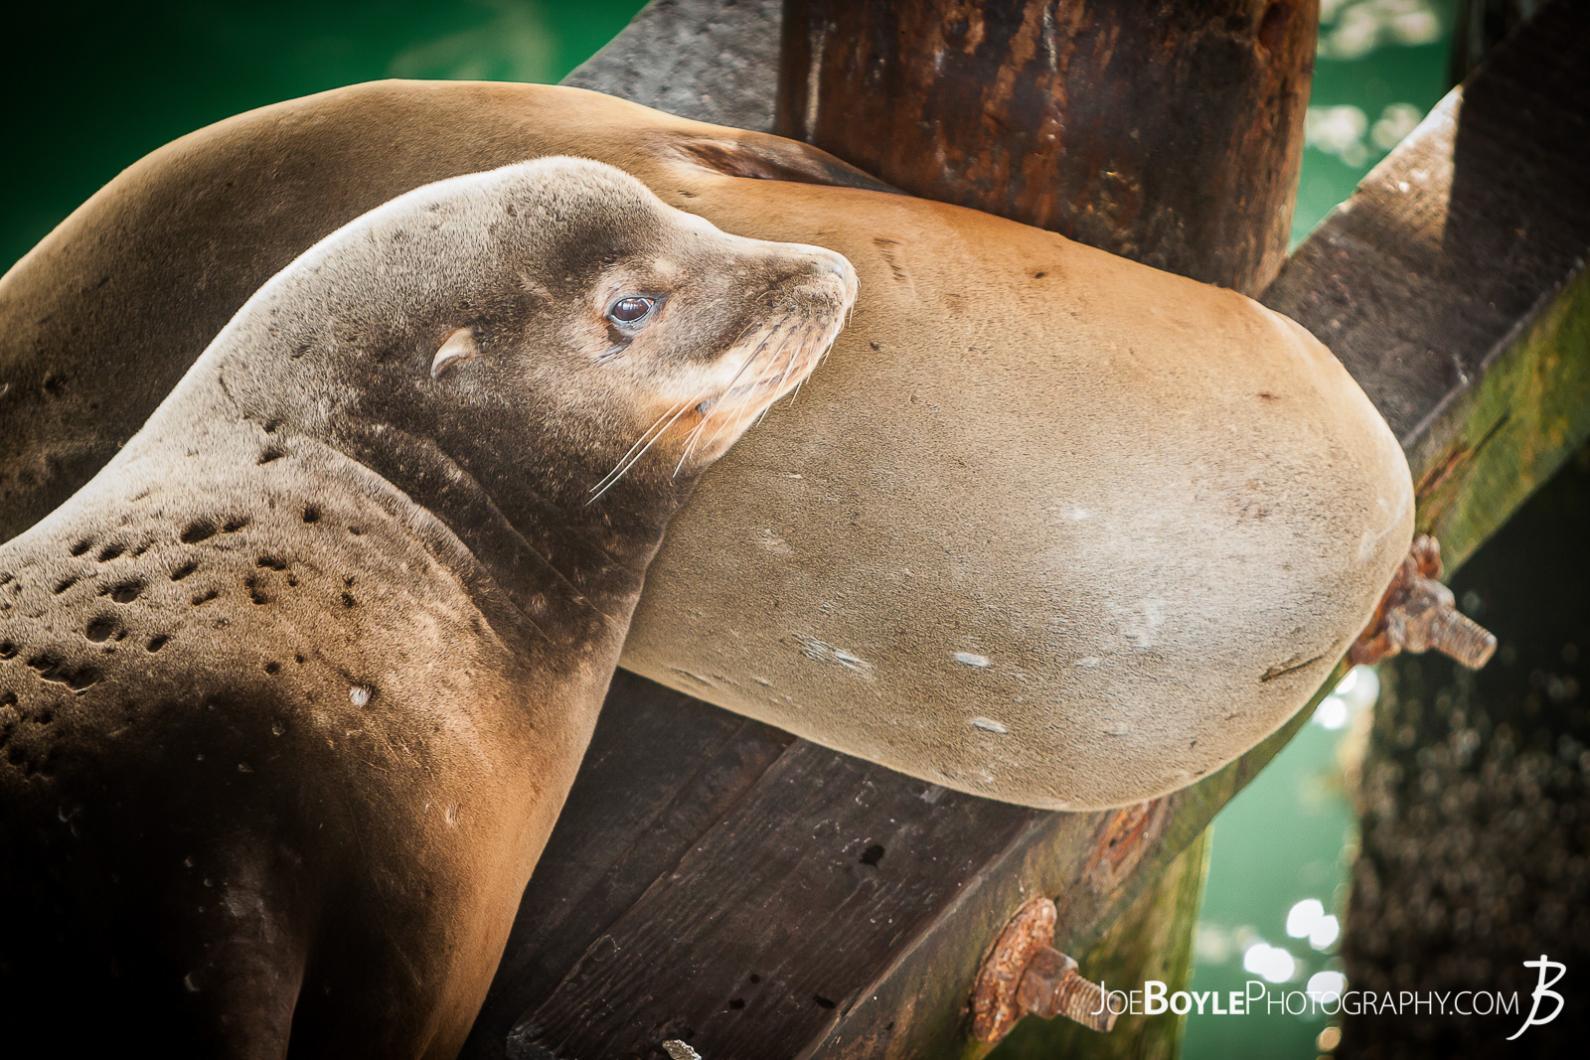 sea-lions-at-rest-one-eye-open